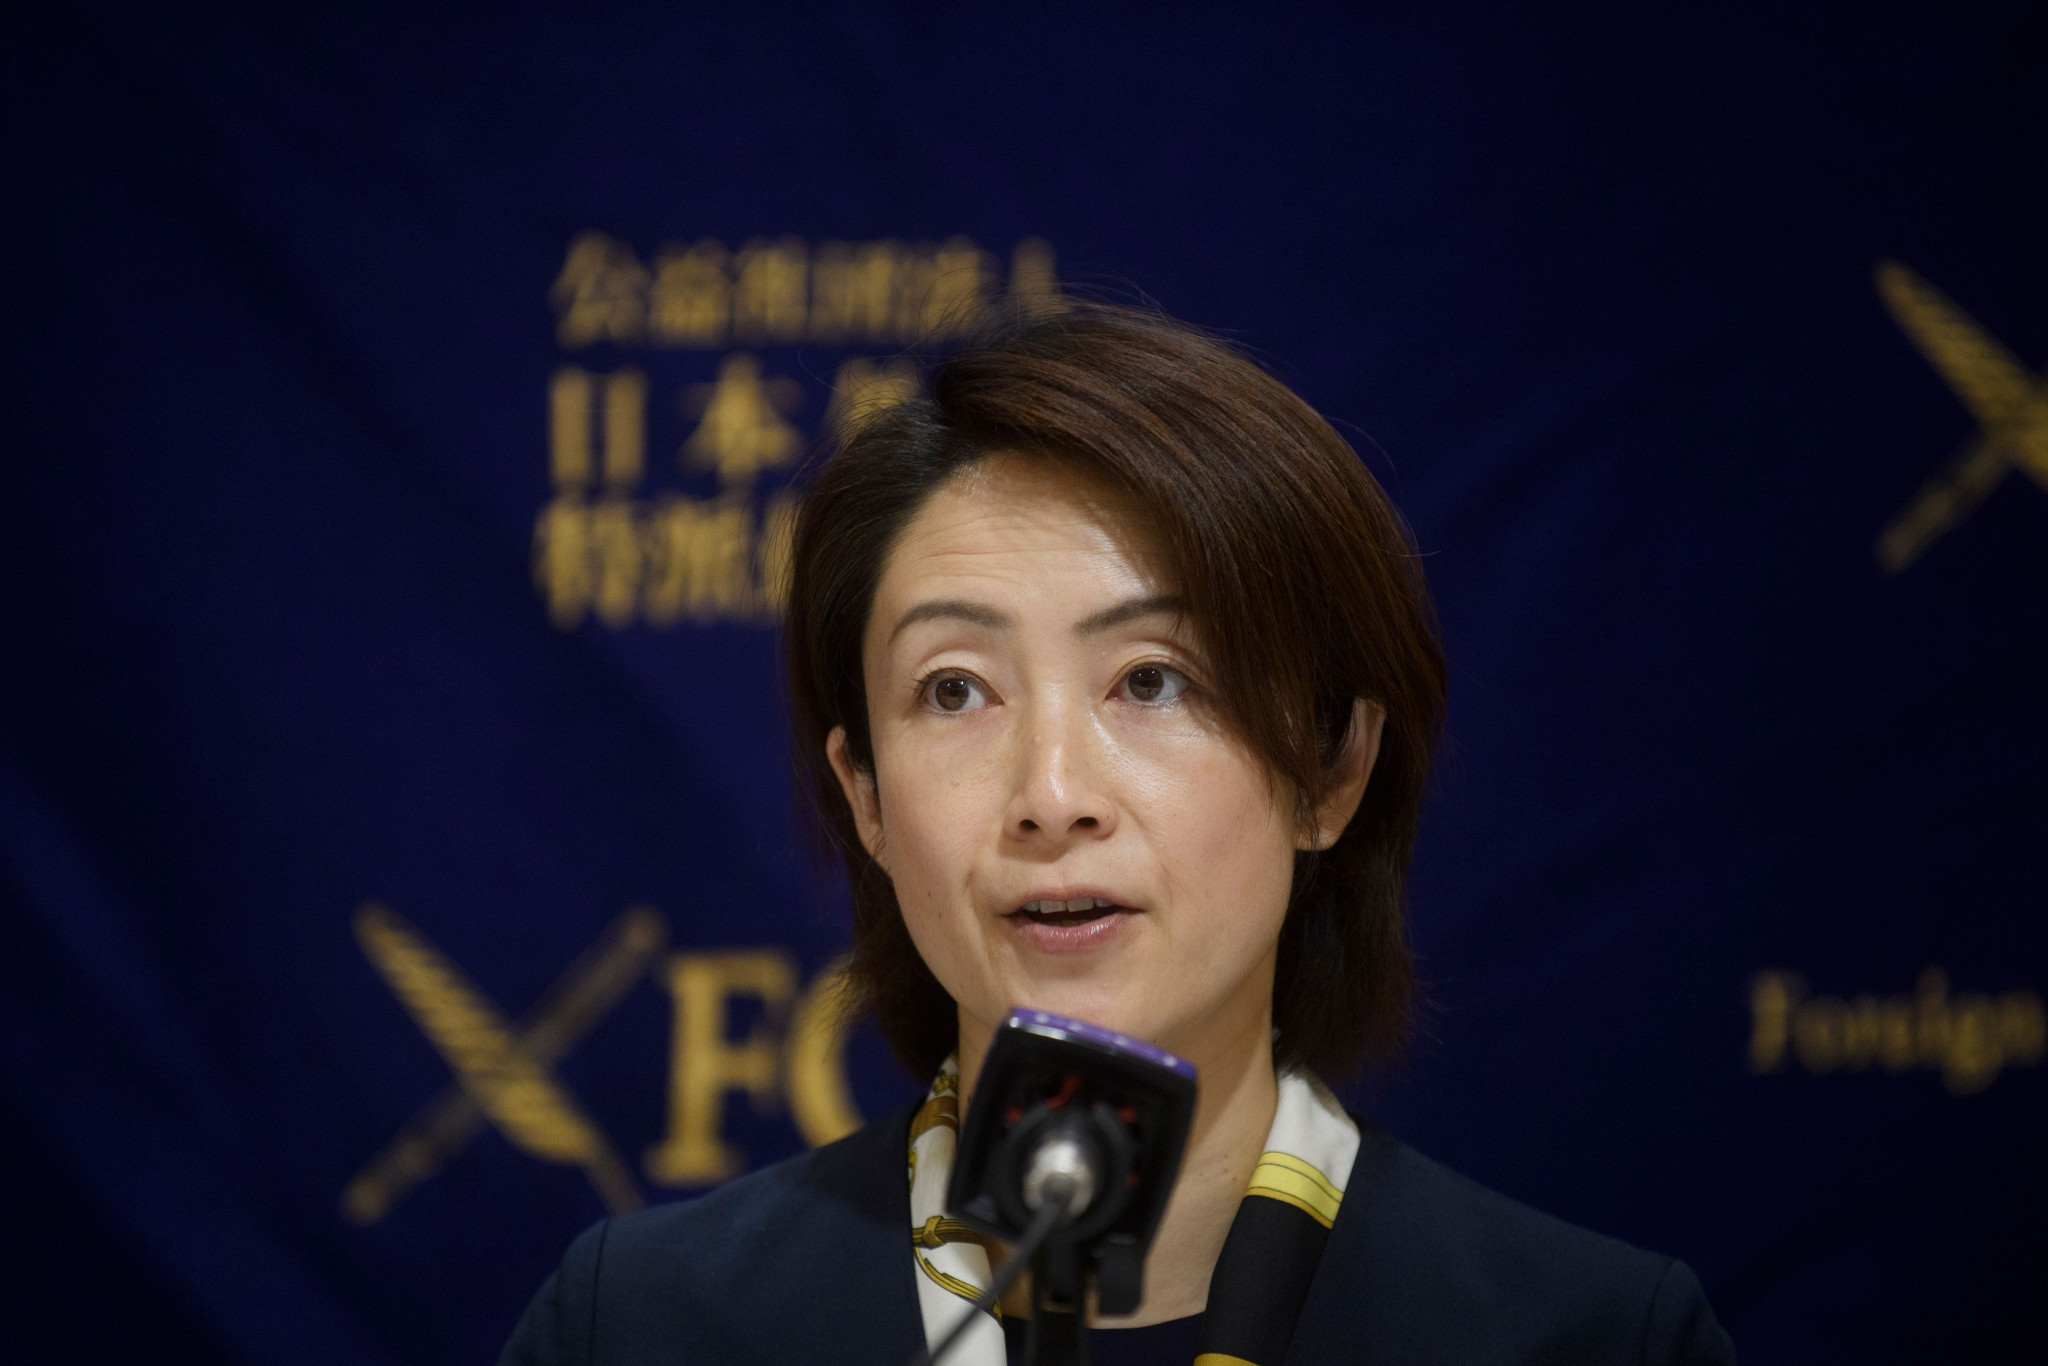 Calls for Japan to create safe sport centre following abuse accounts